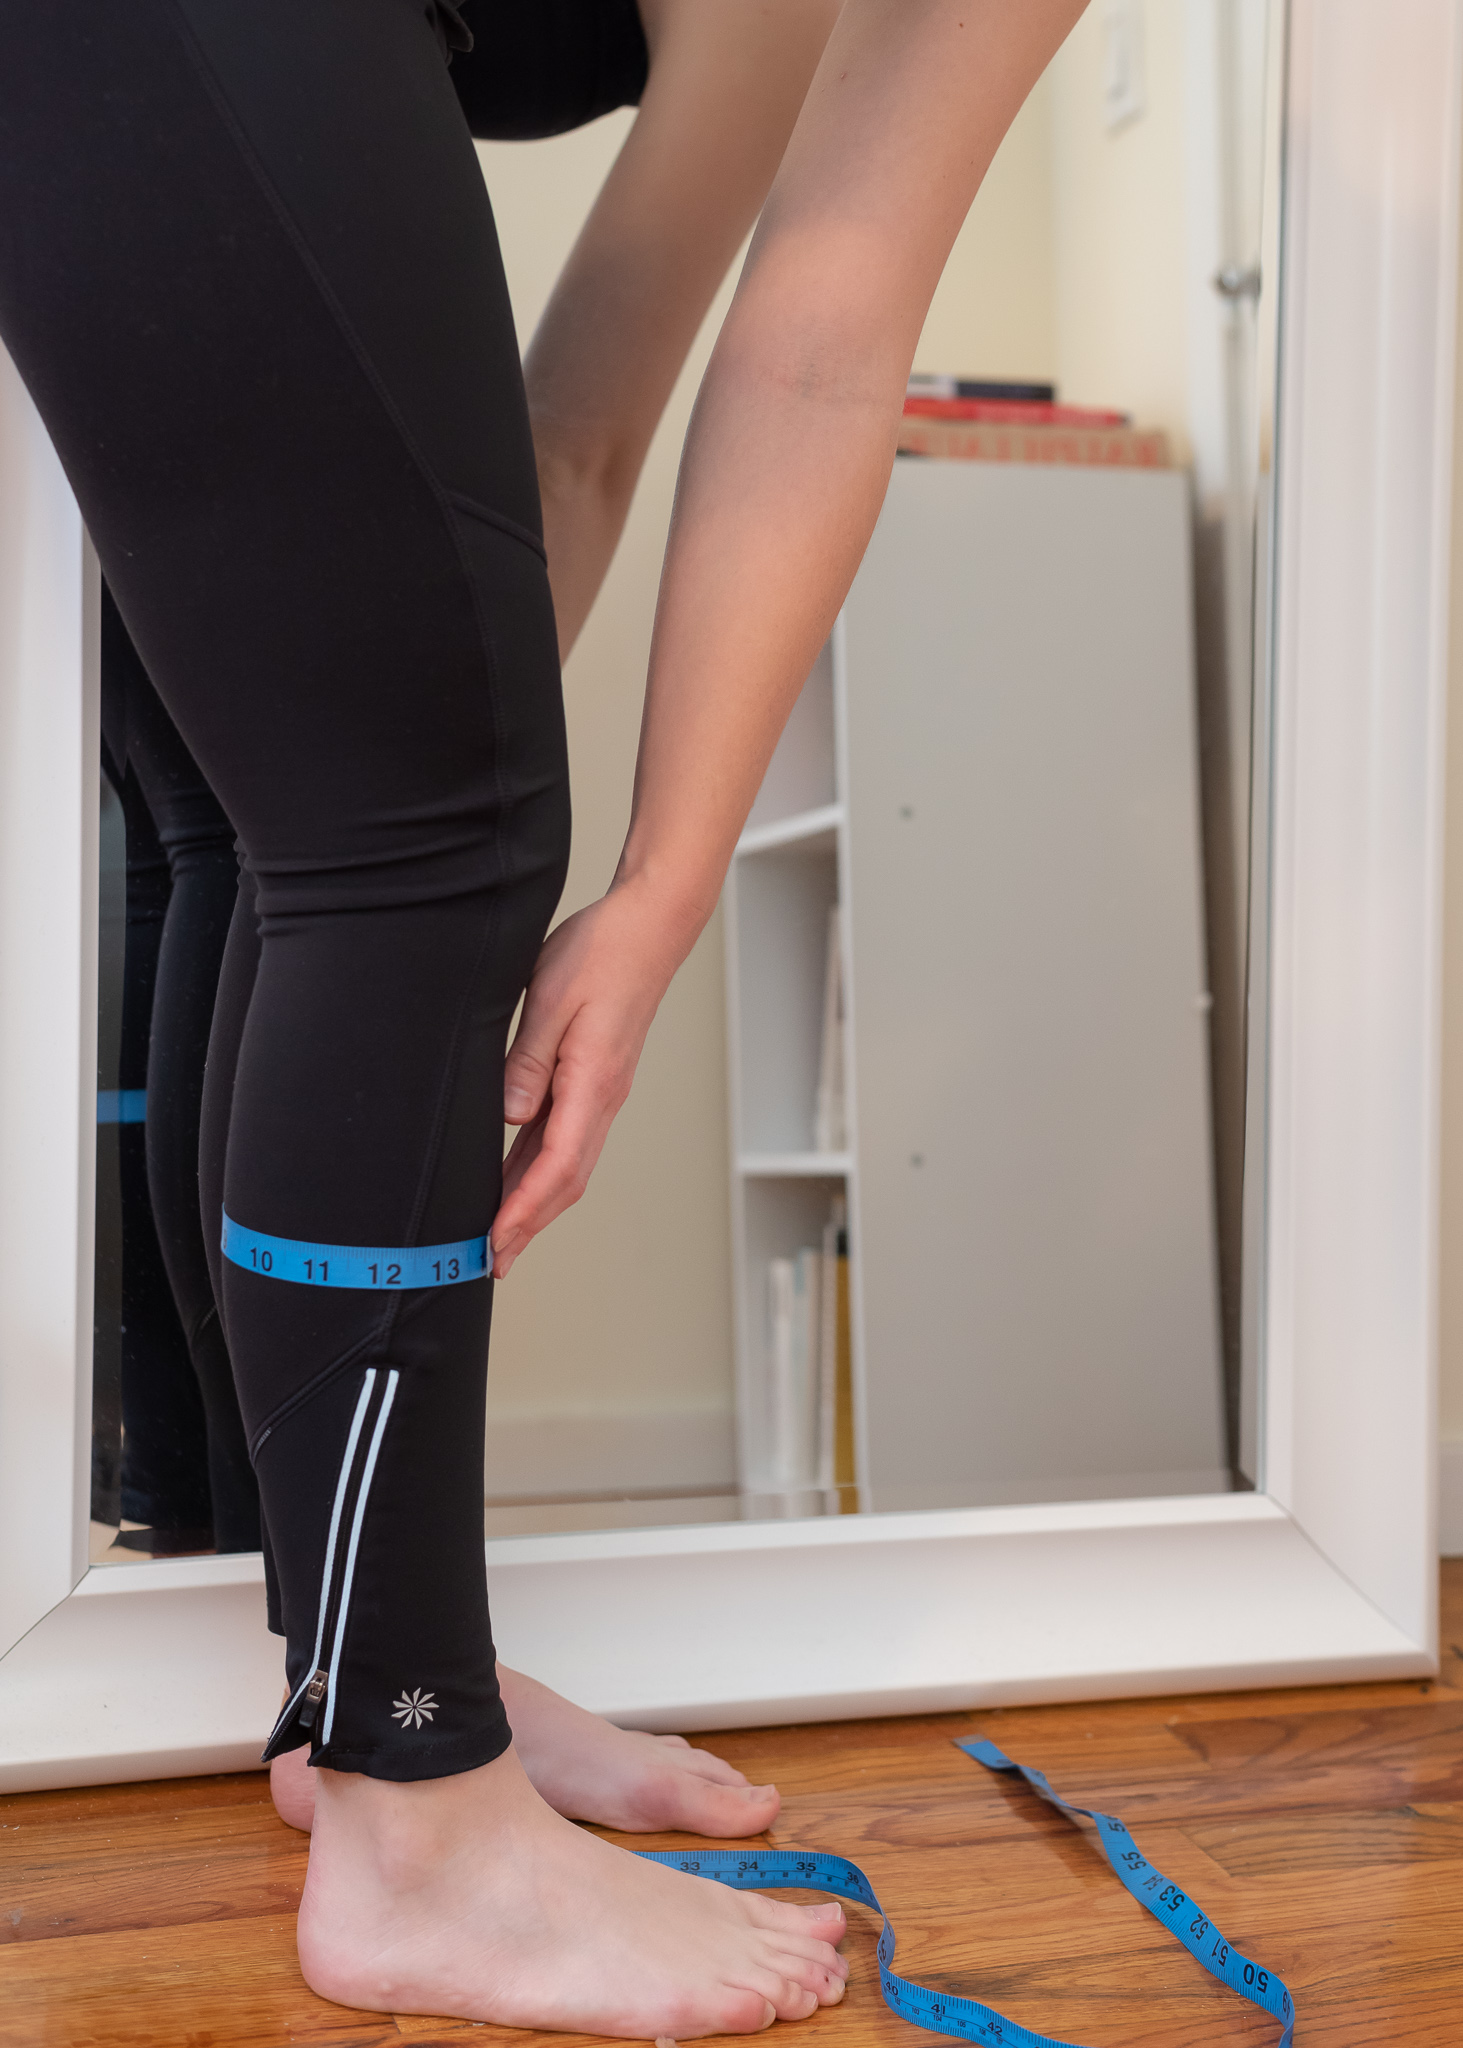 How to take your calf measurement